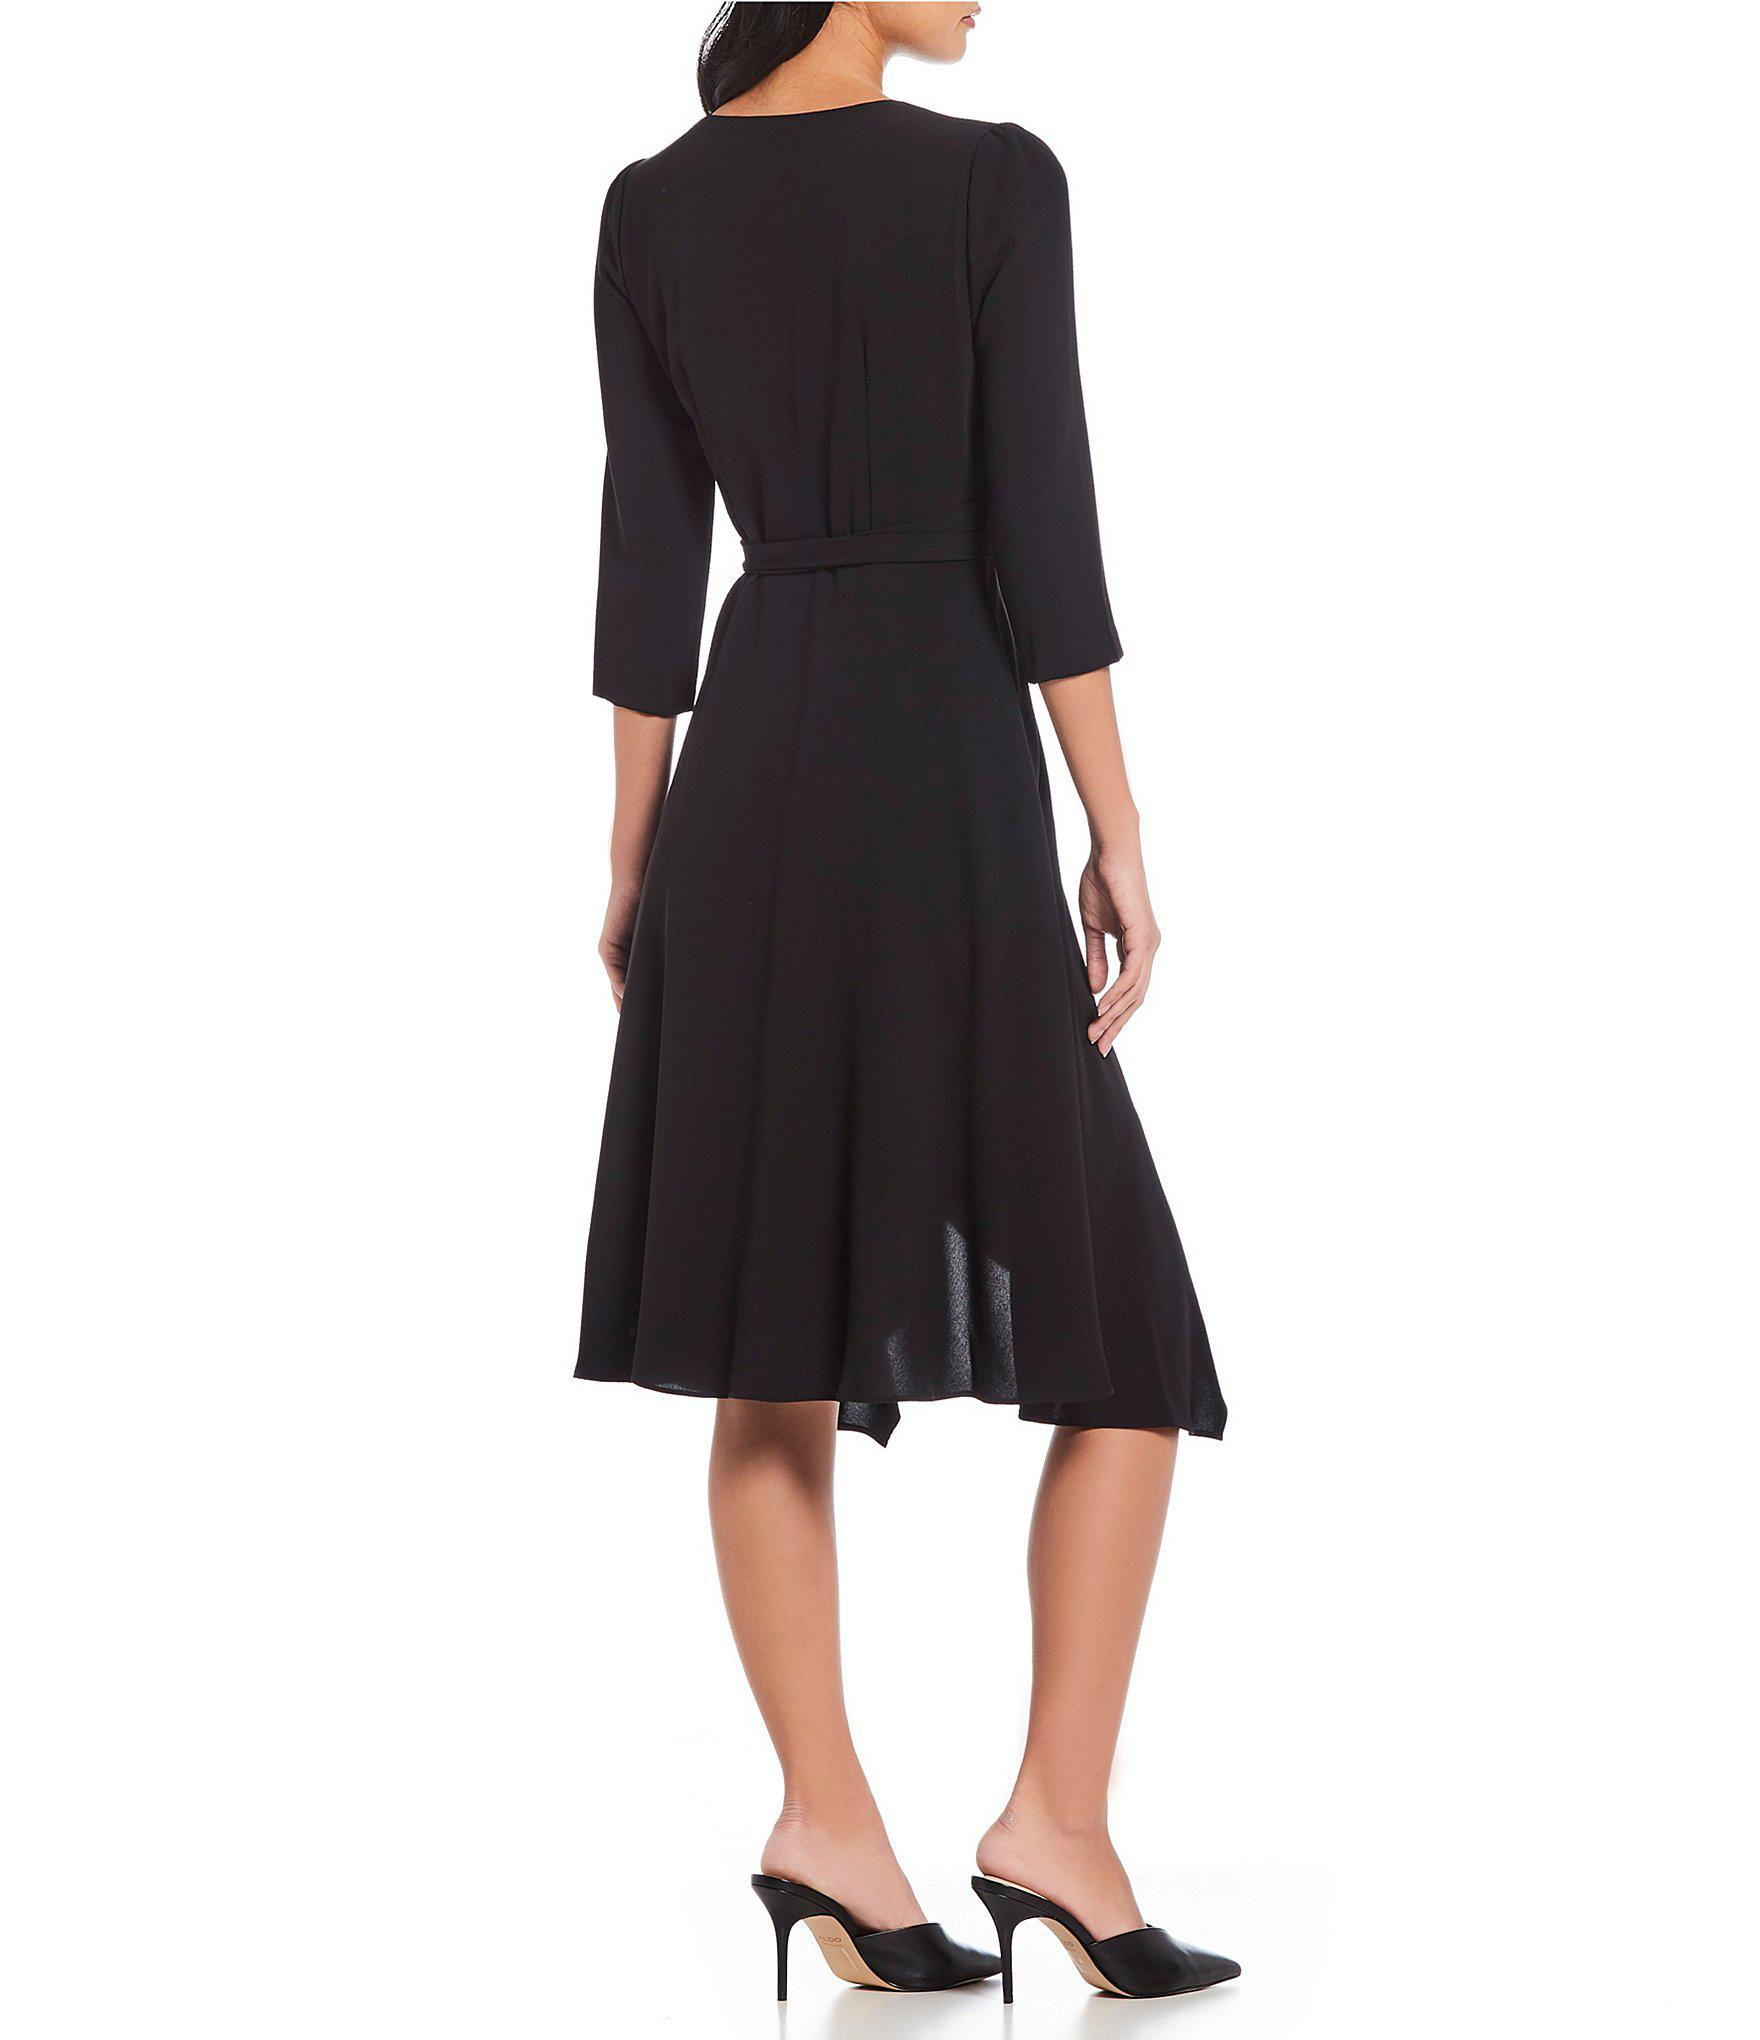 a35082ee943 Adrianna Papell - Black Crepe Tie Front Wrap Dress - Lyst. View fullscreen